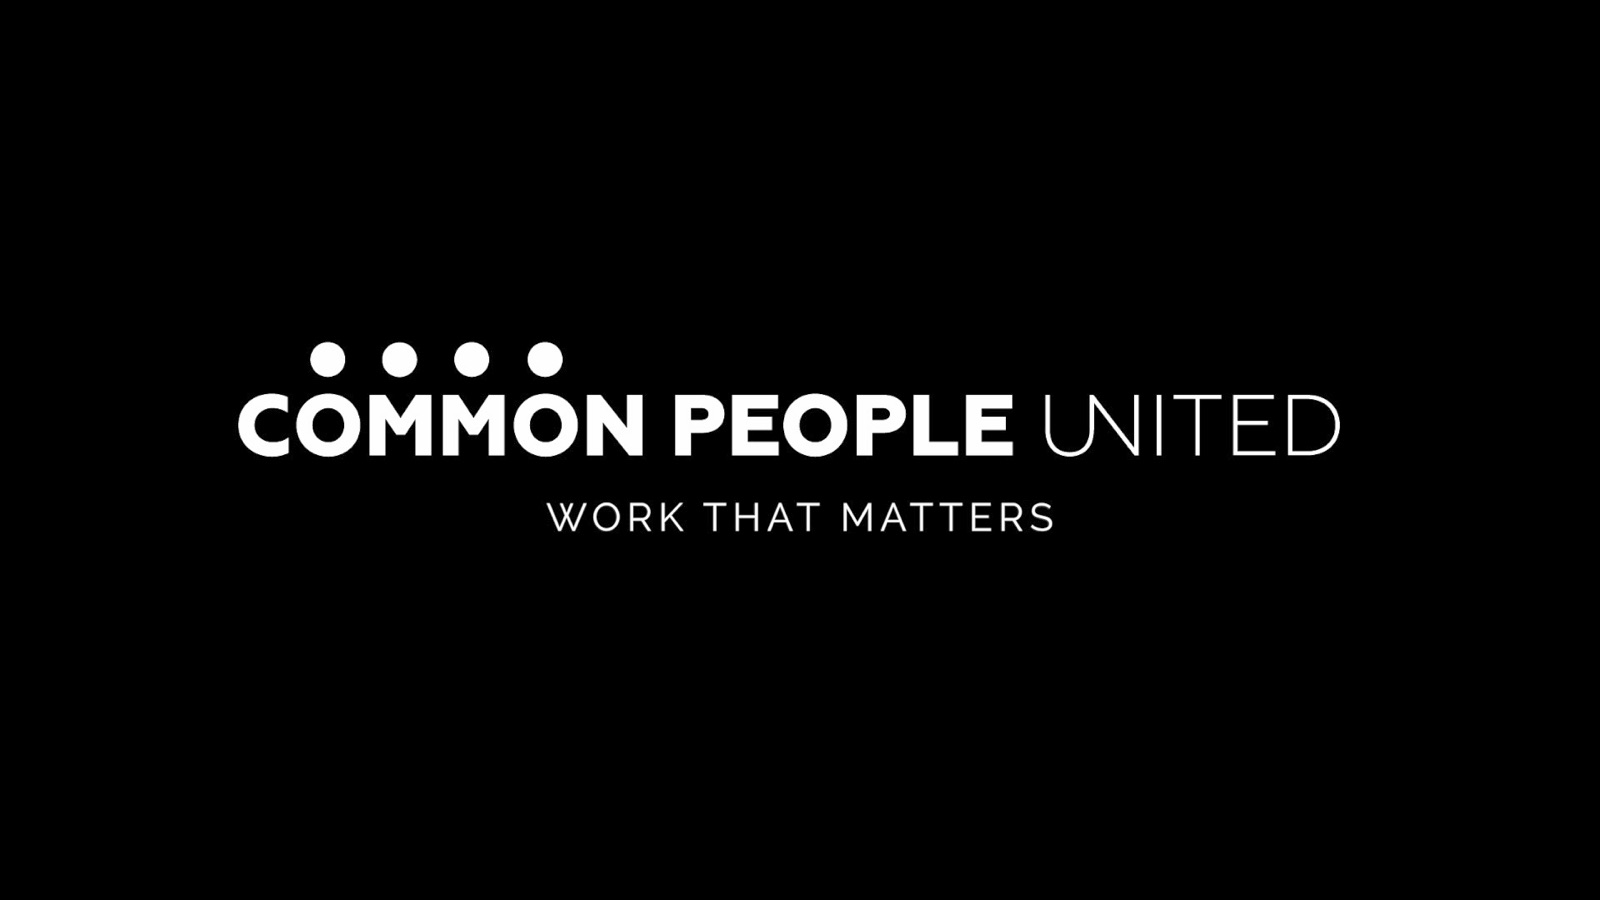 Common People United - Work that matters